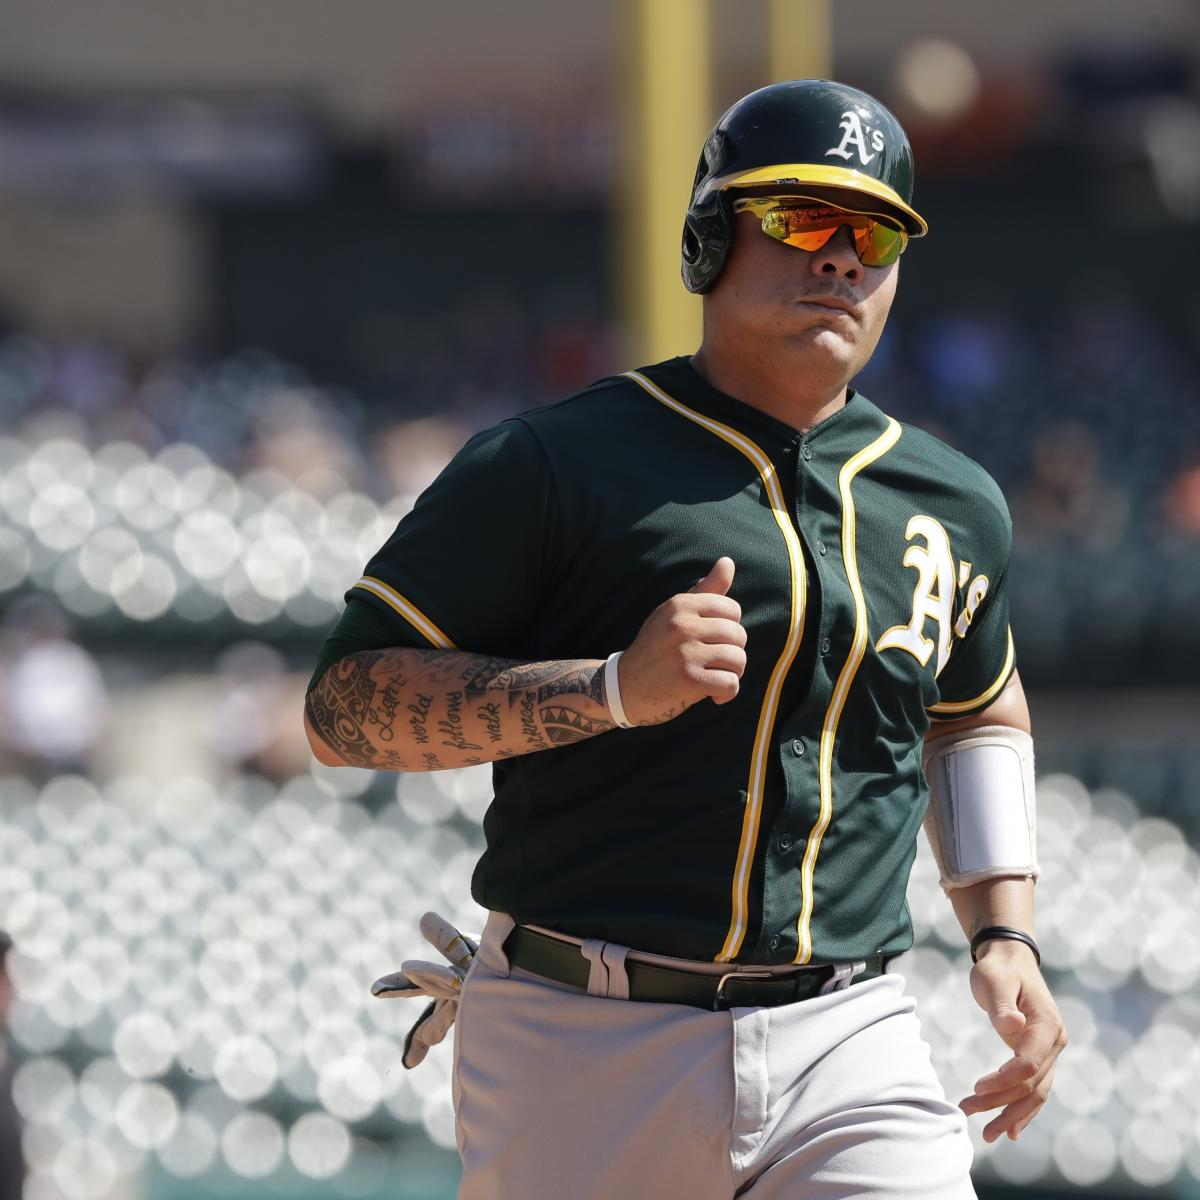 Athletics Catcher Bruce Maxwell Becomes 1st MLB Player to Kneel for Anthem